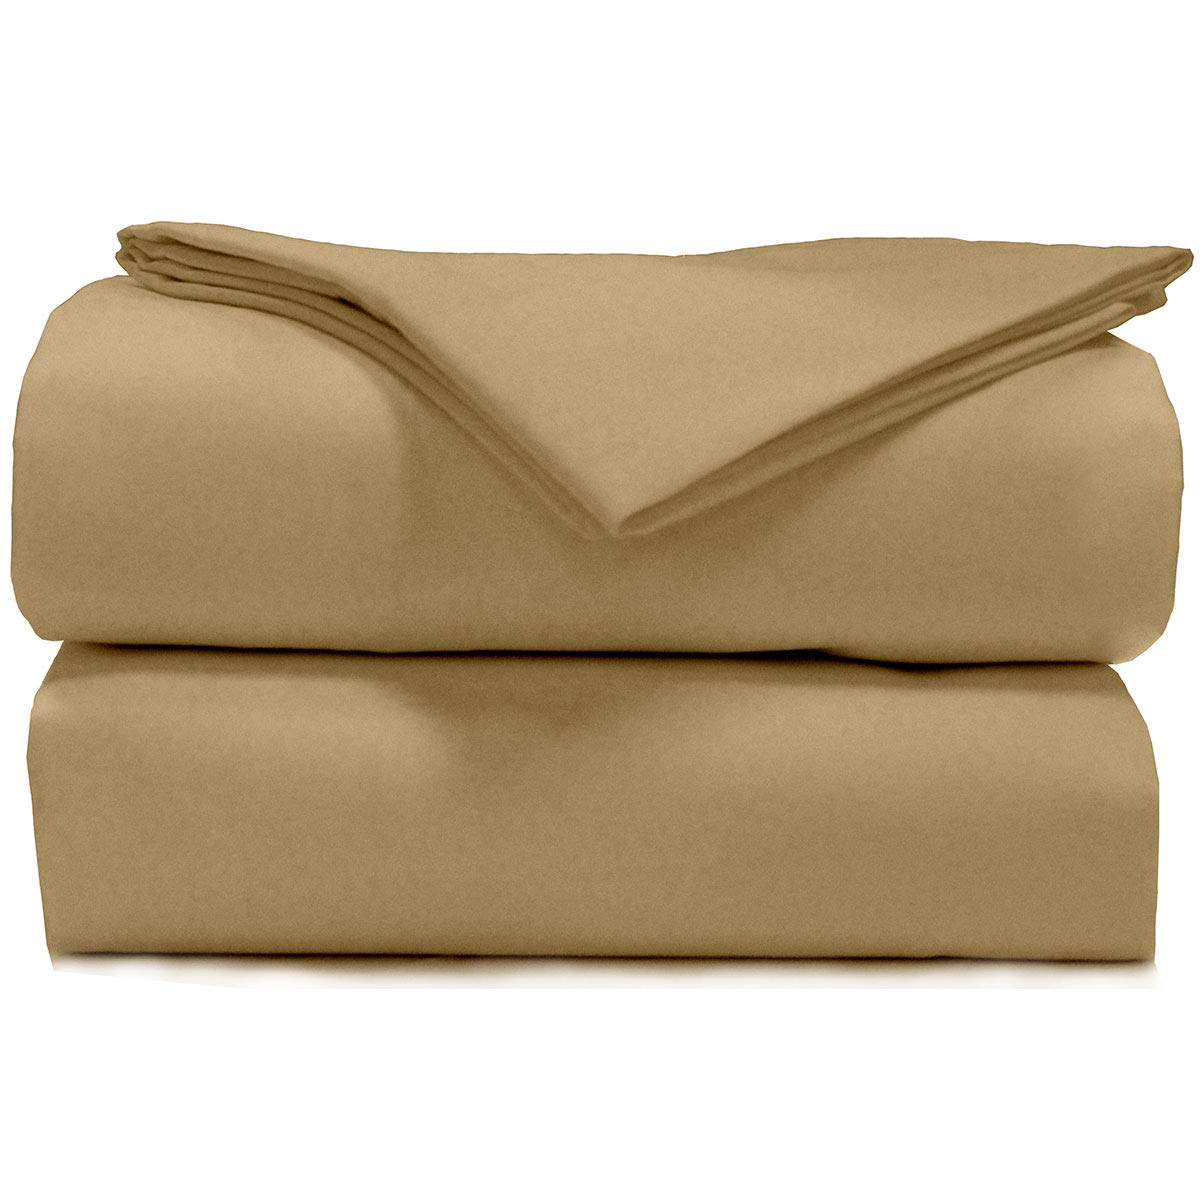 AB Lifestyles Bunk Size RV Camper Sheet set 28x75 Cotton Color: Camel Allyson Brooke Inc. 315-20029/28x75 RVSS Camel